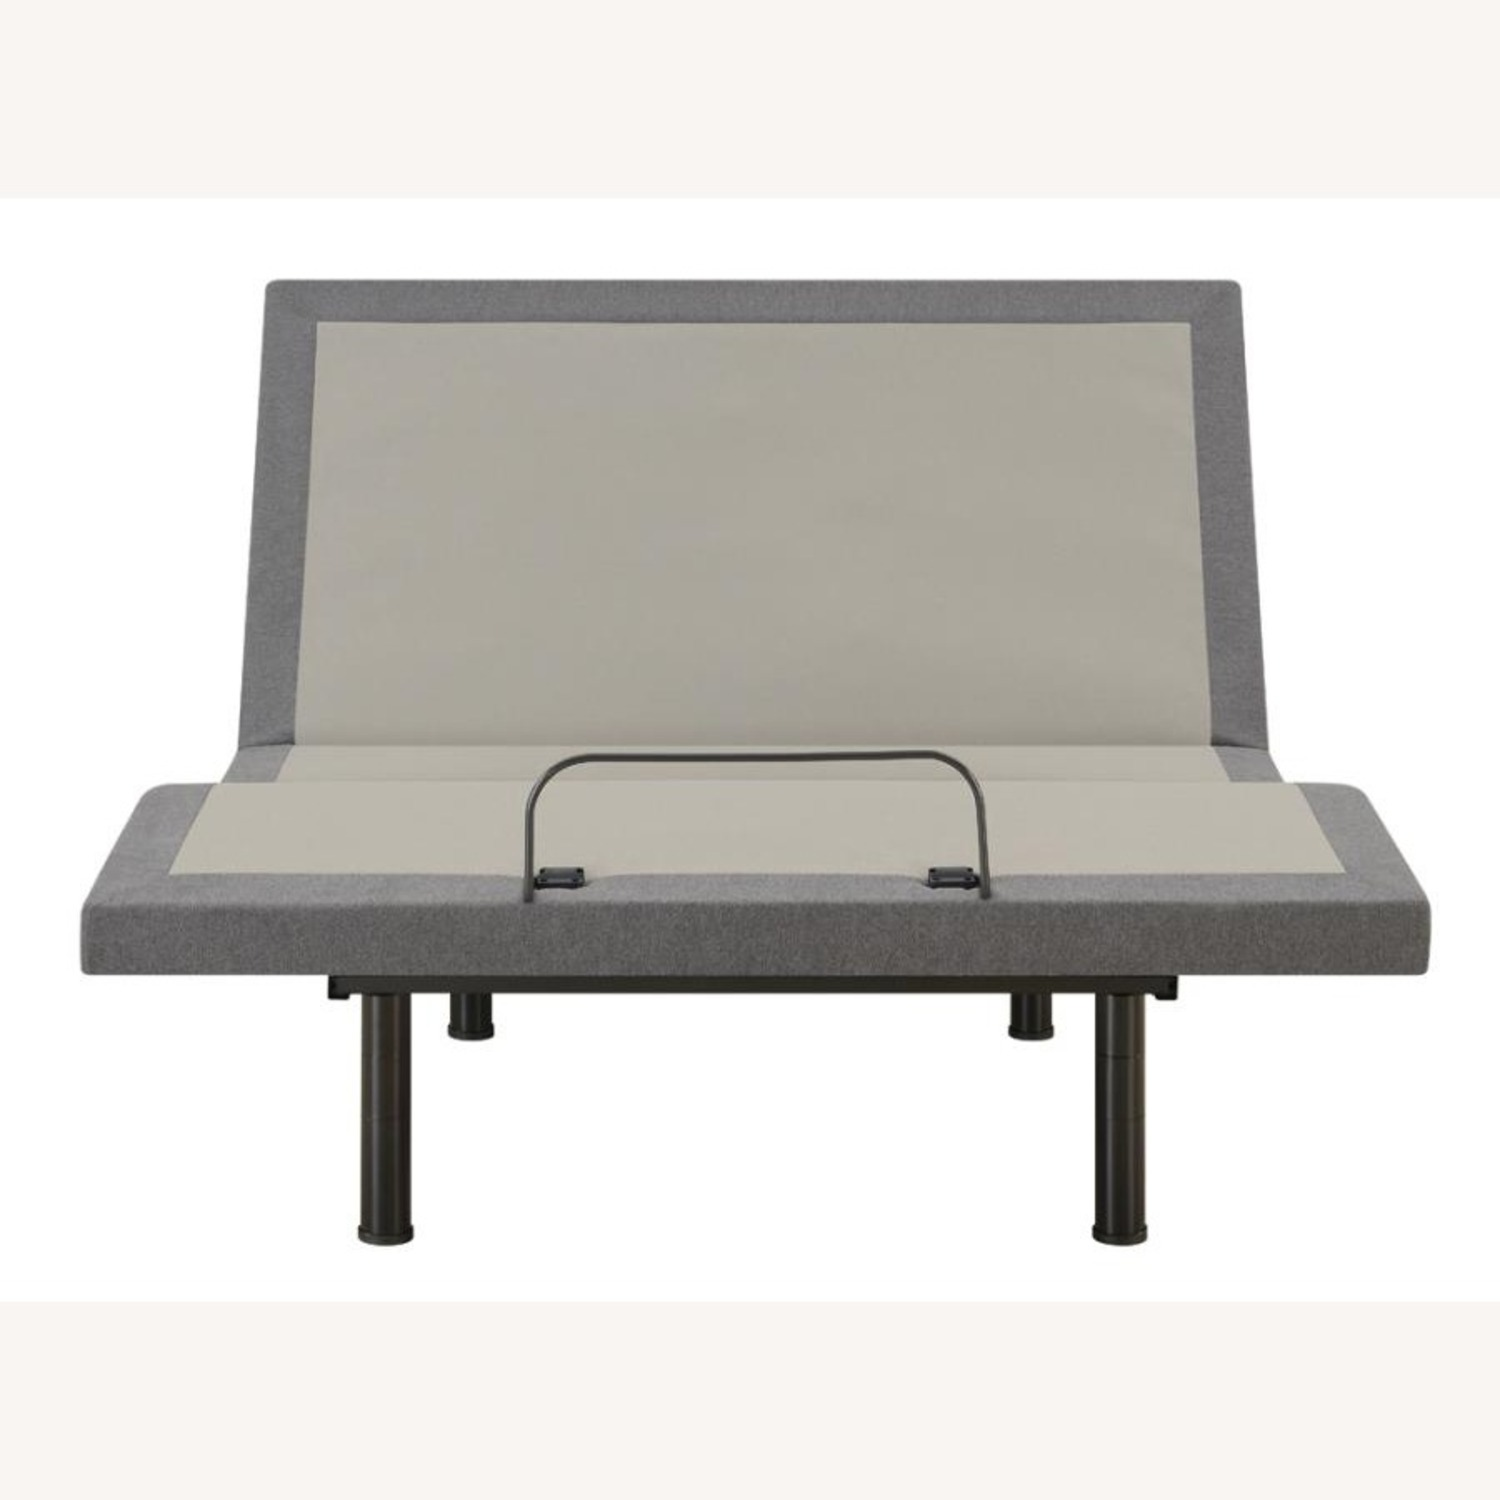 Adjustable Twin XL Bed Base In Grey Fabric - image-1